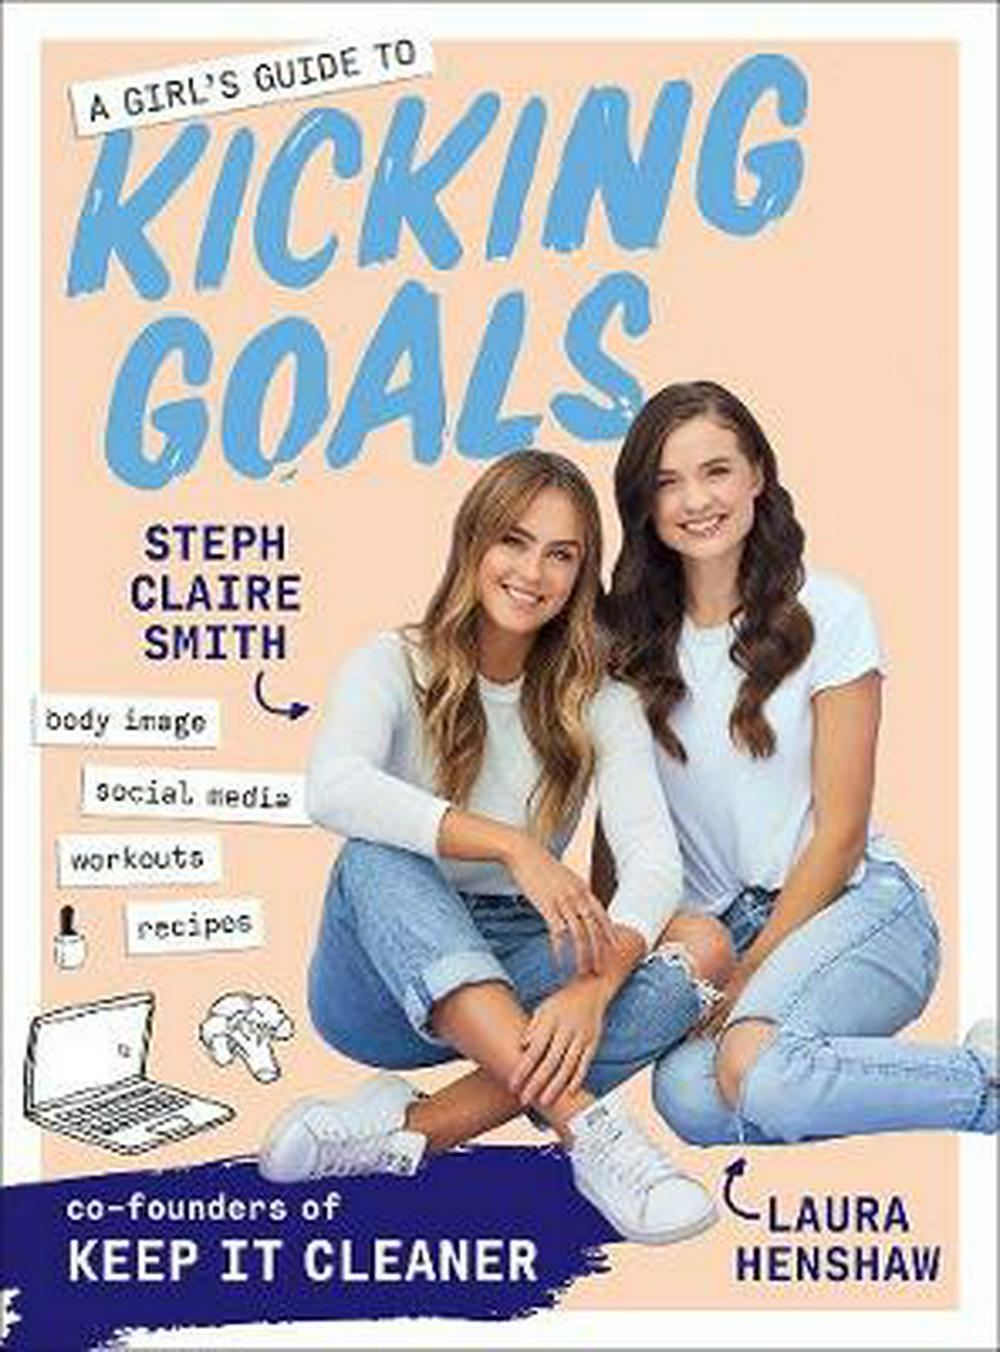 A Girl's Guide to Kicking GoalsFrom the co-founders of Keep-It Cleaner